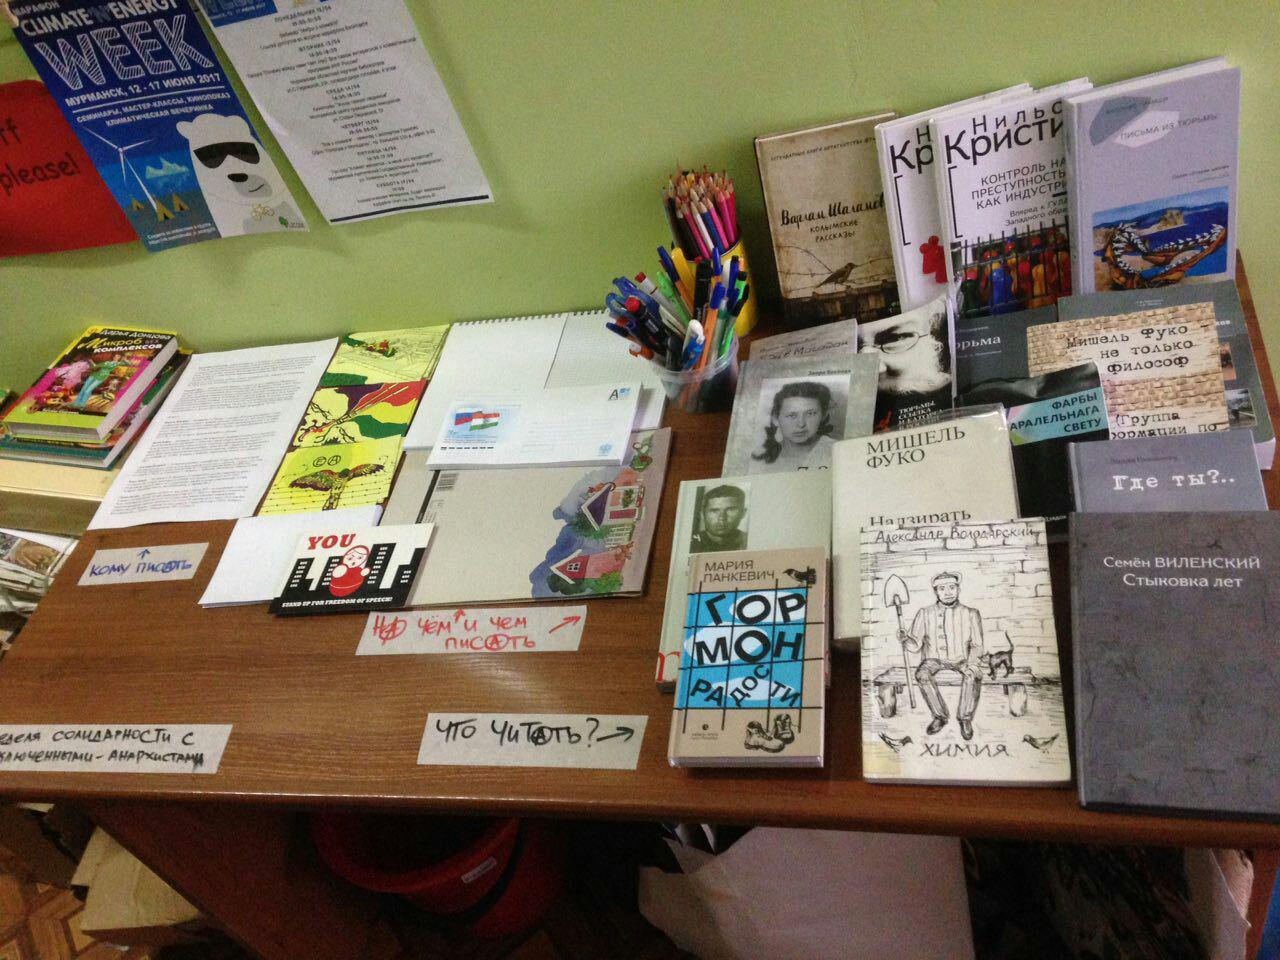 Letter writing event in Murmansk, Russia